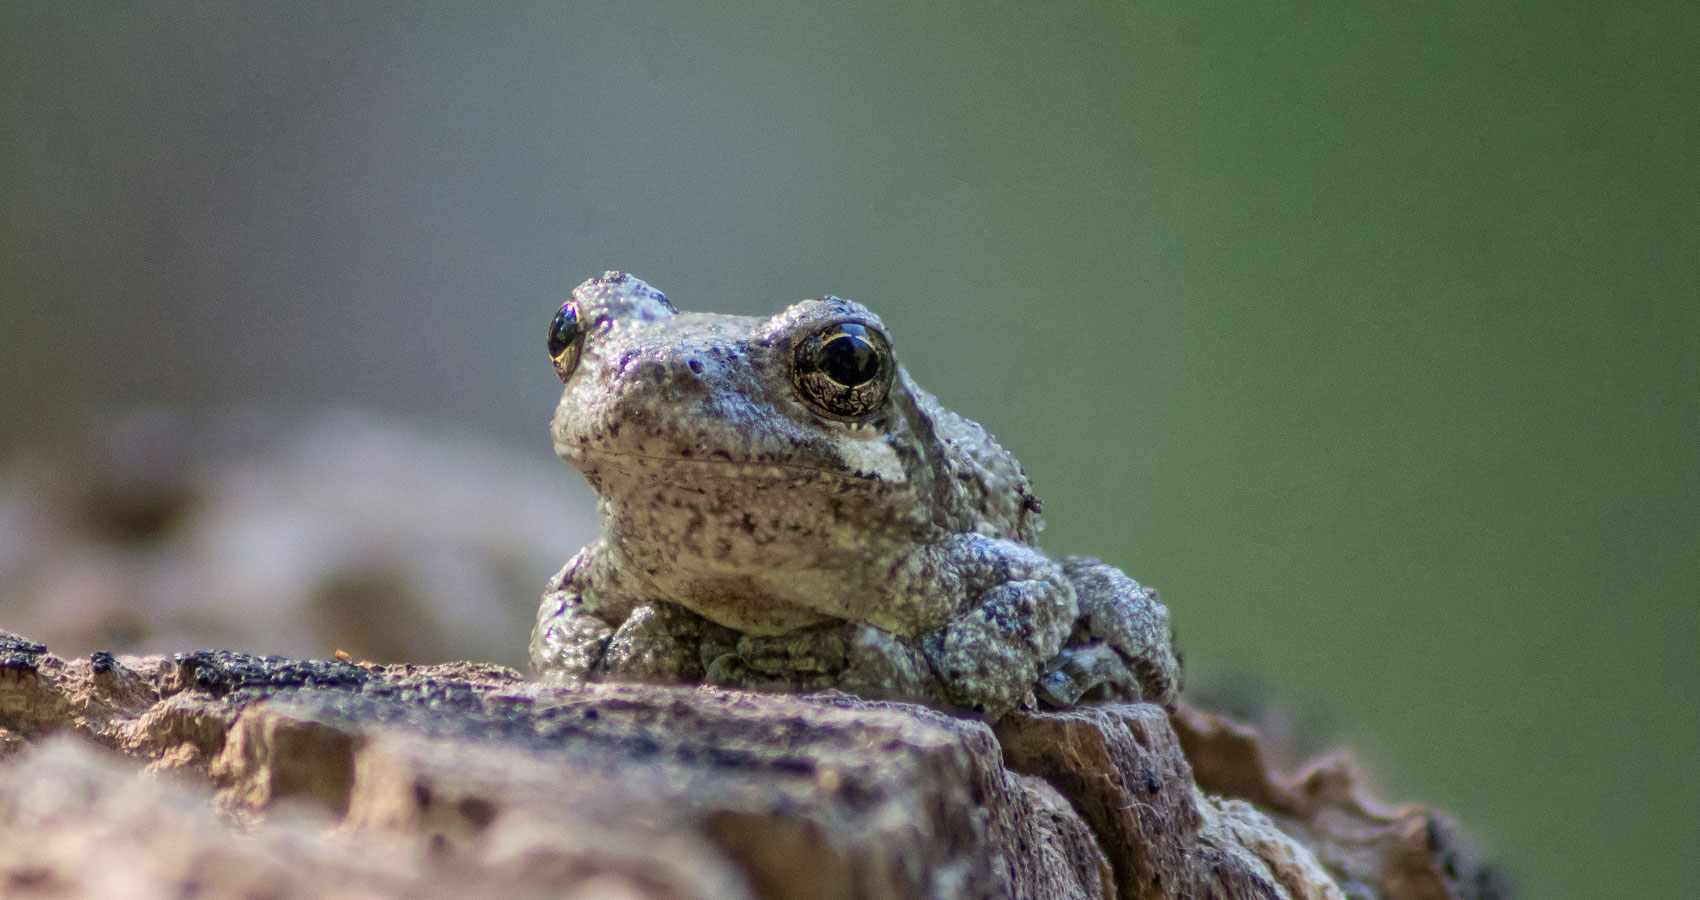 Gray Frog written by John R. Cobb at Spillwords.com